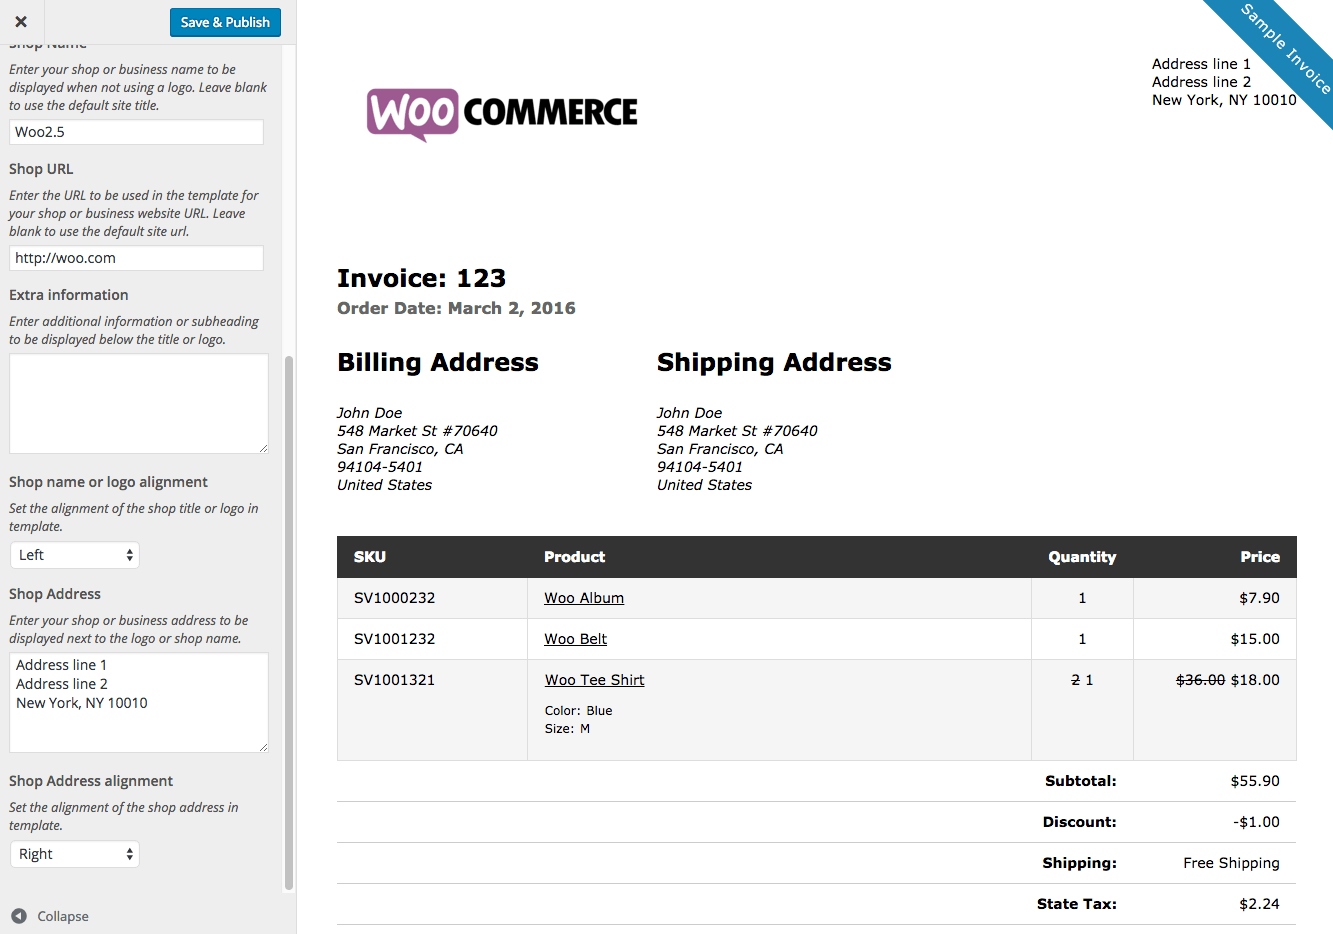 Usdgus  Ravishing Print Invoices Amp Packing Lists  Woocommerce With Interesting Woocommerce Print Invoices  Packing Lists Customizer With Astounding Celtic Invoice Discounting Also Commercial Invoice And Proforma Invoice In Addition Print Invoice Books And Example Of An Invoice For Payment As Well As Sales Invoice Format Additionally Dealer Invoice Price Honda From Woocommercecom With Usdgus  Interesting Print Invoices Amp Packing Lists  Woocommerce With Astounding Woocommerce Print Invoices  Packing Lists Customizer And Ravishing Celtic Invoice Discounting Also Commercial Invoice And Proforma Invoice In Addition Print Invoice Books From Woocommercecom